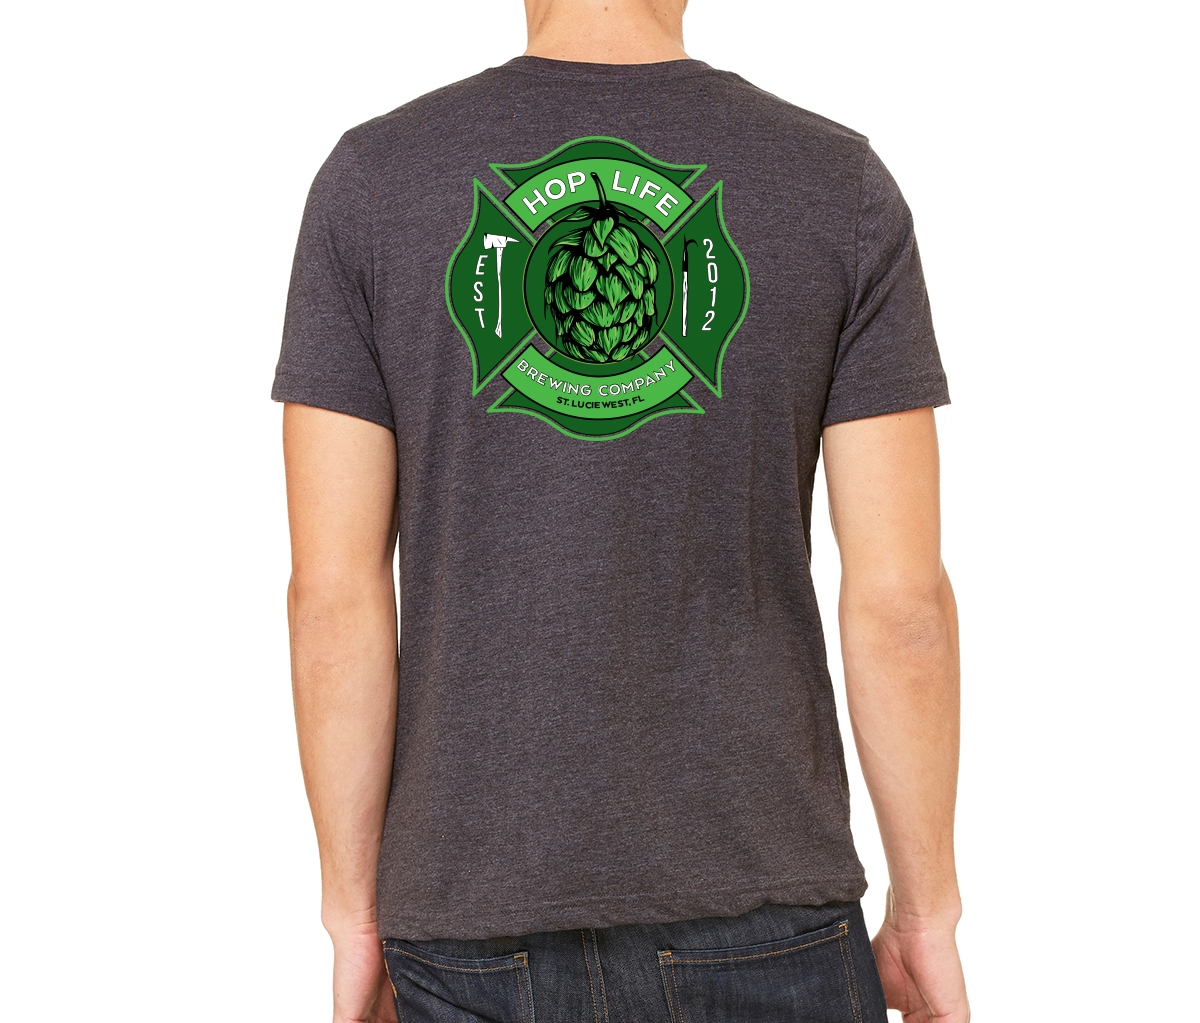 Maltese Cross Hop Life Tee - Dark Grey Heather - Hop Life Brewing Company